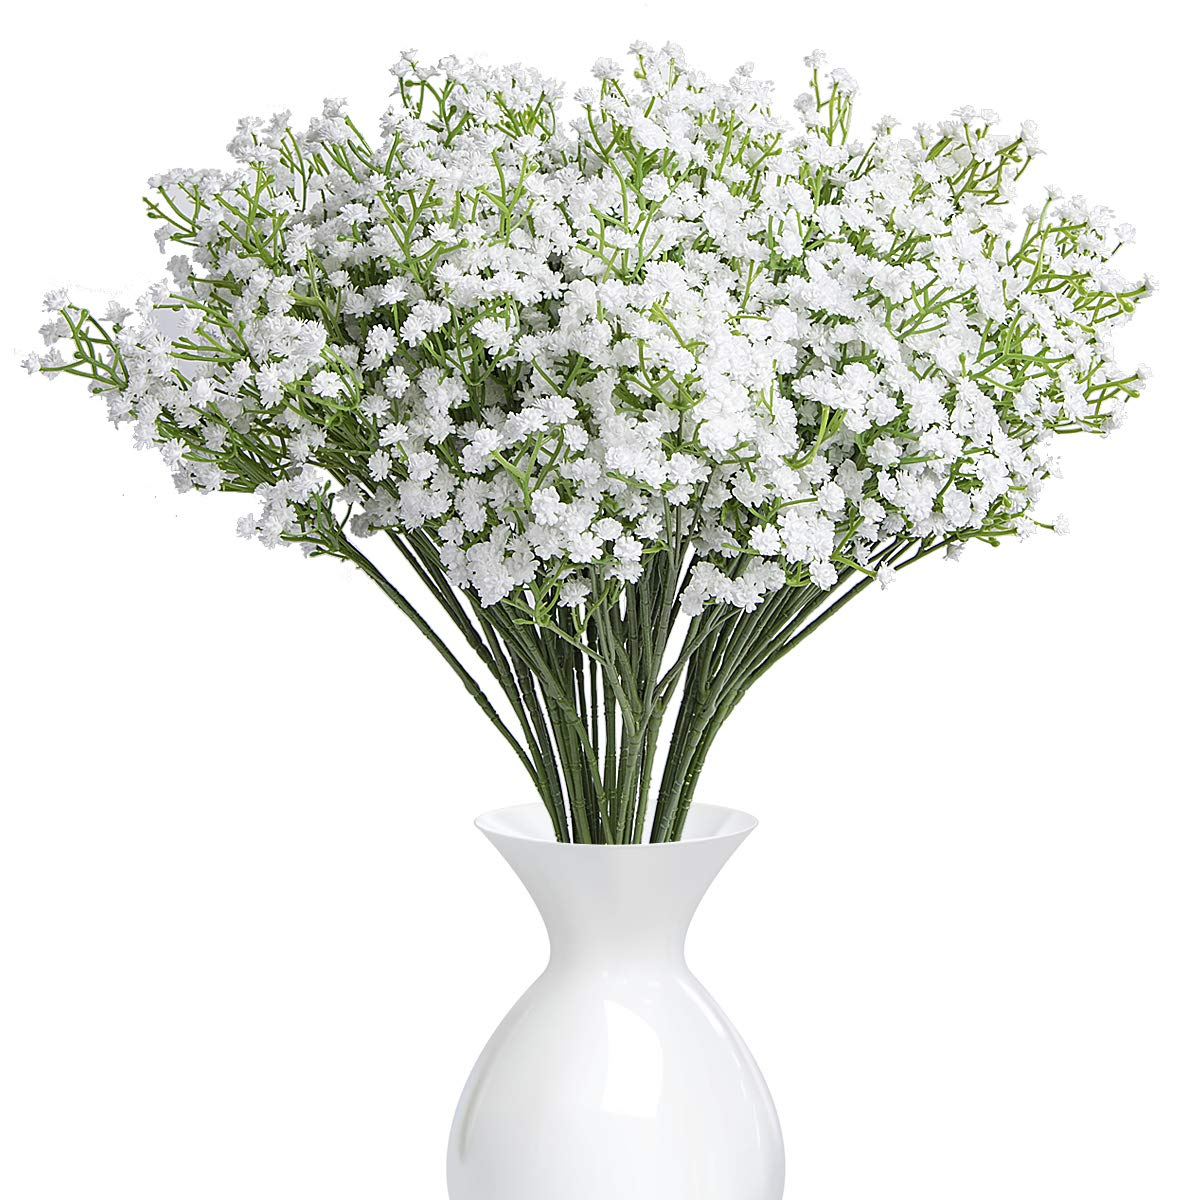 225 & Flowers for Vases for Decoration: Amazon.com